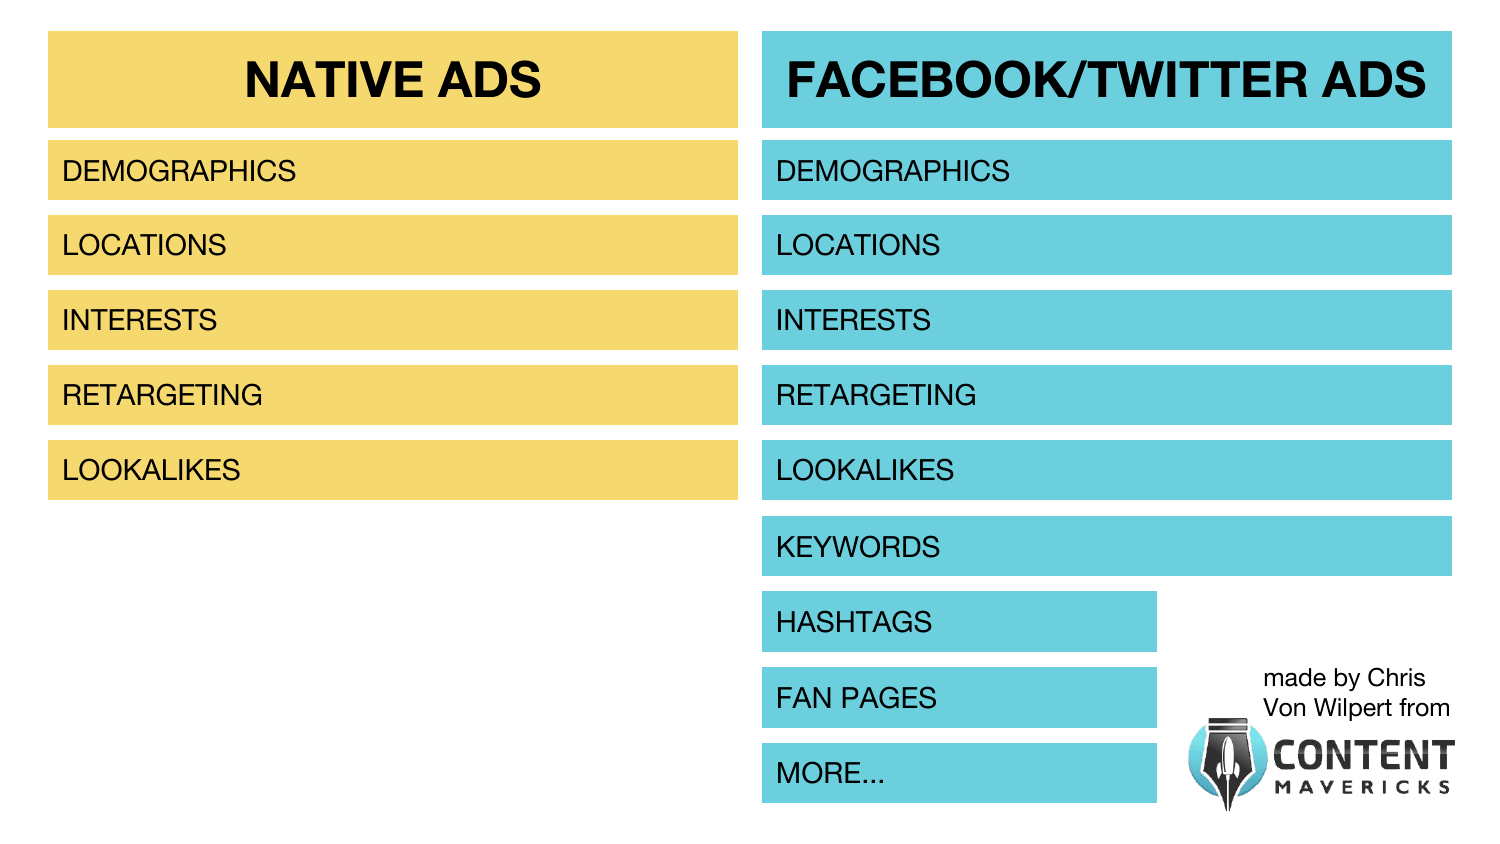 native ads vs social ads